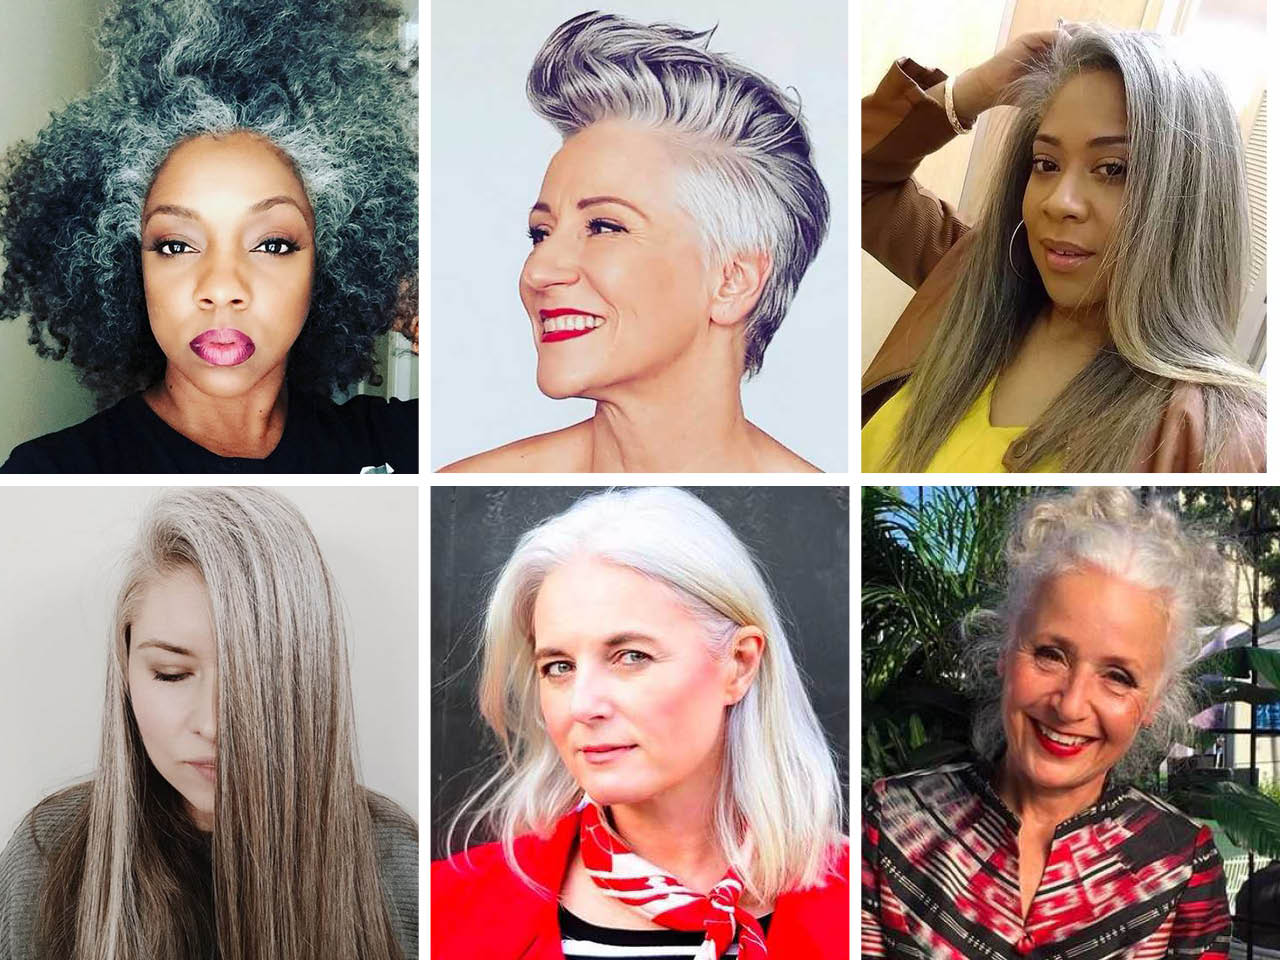 Grey Hair Inspiration That Will Inspire You To Ditch The Dye